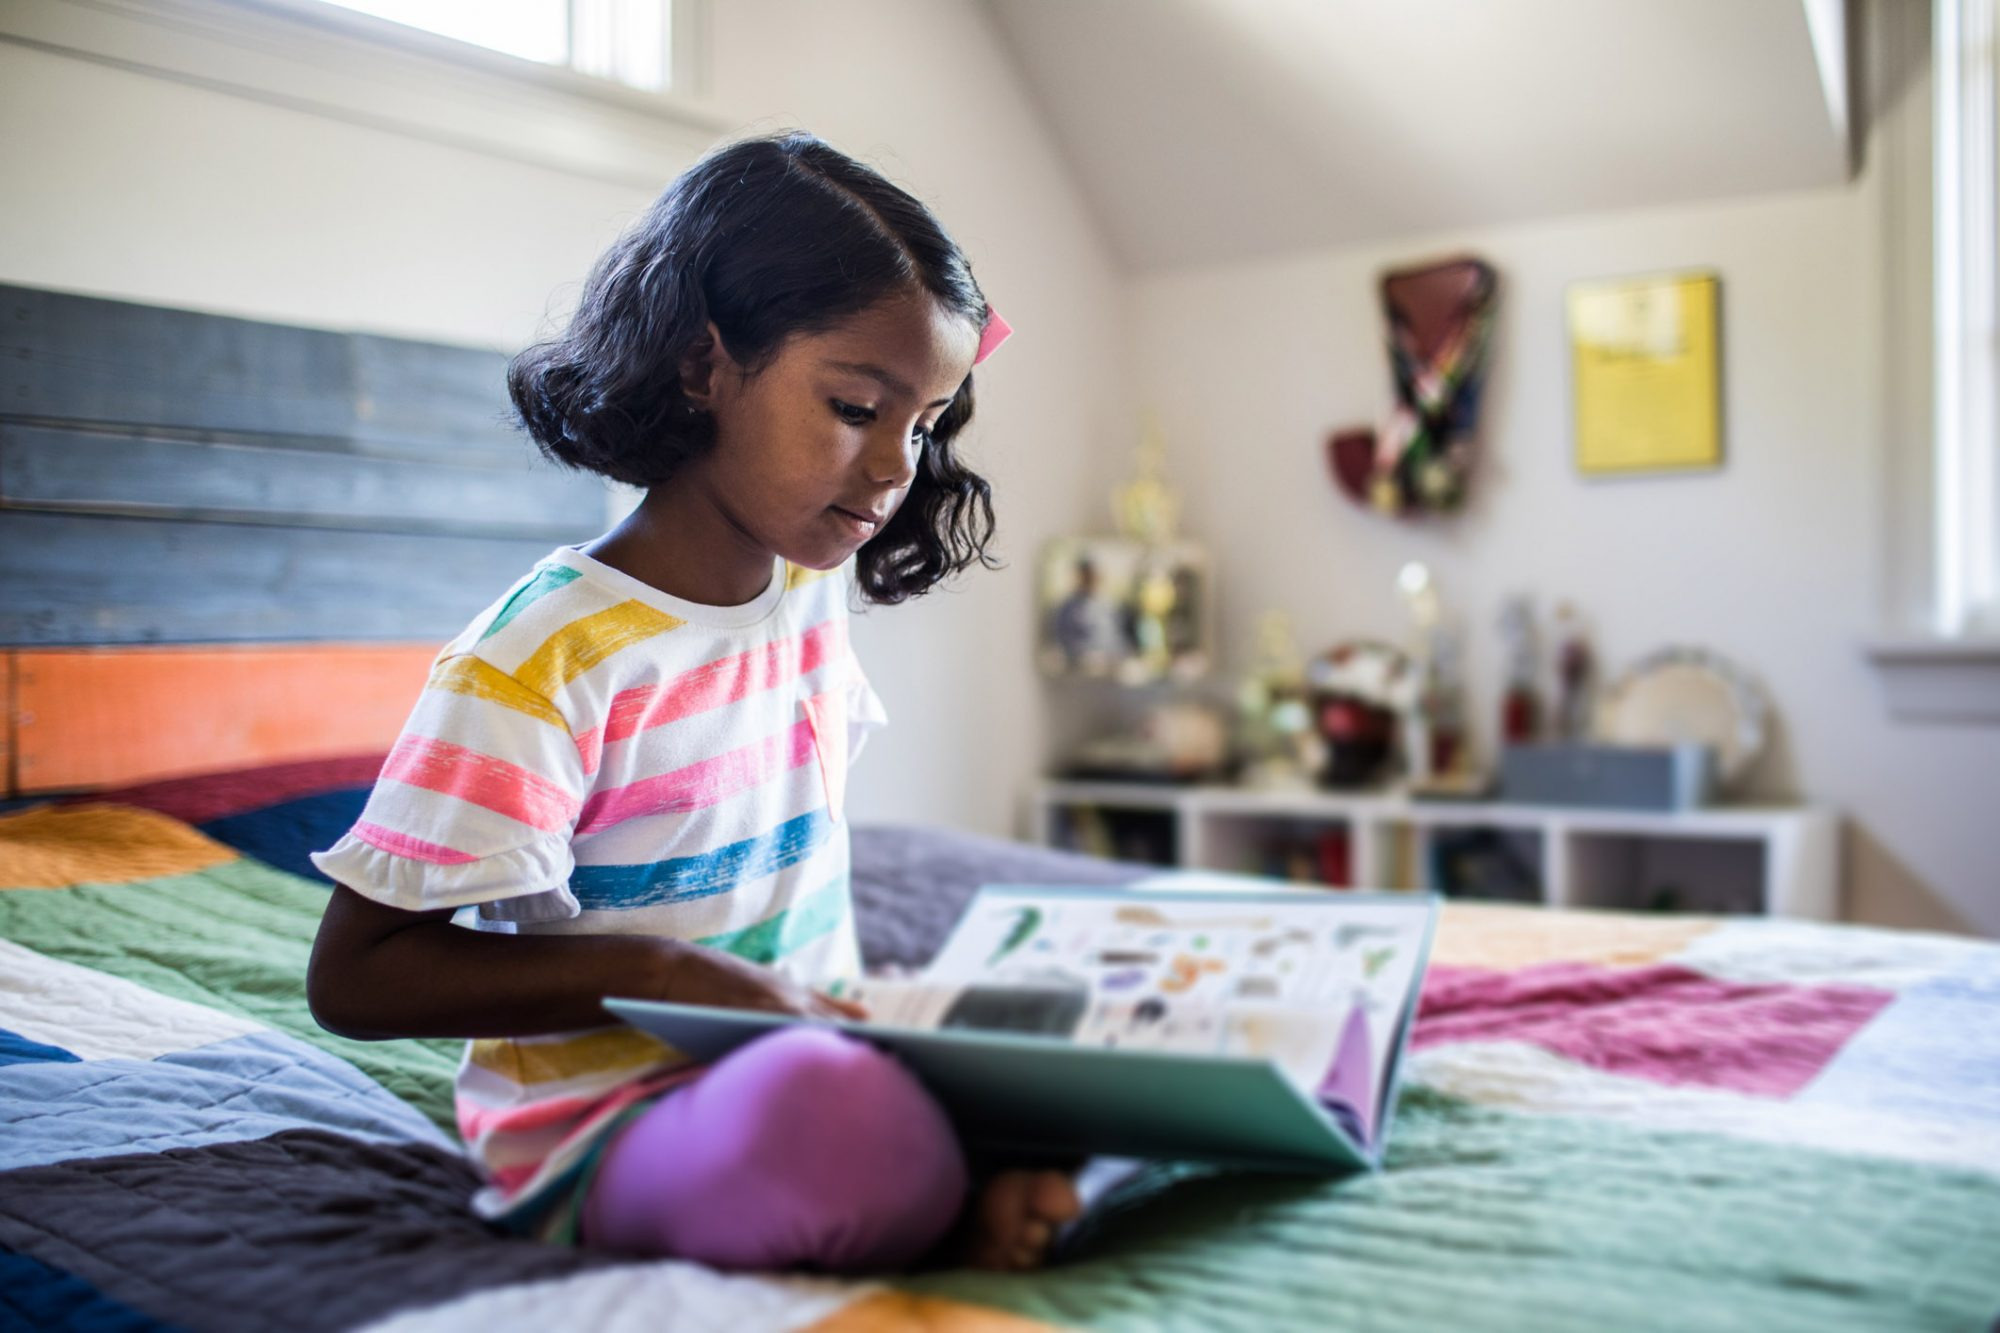 An image of a girl reading a book on her bed.